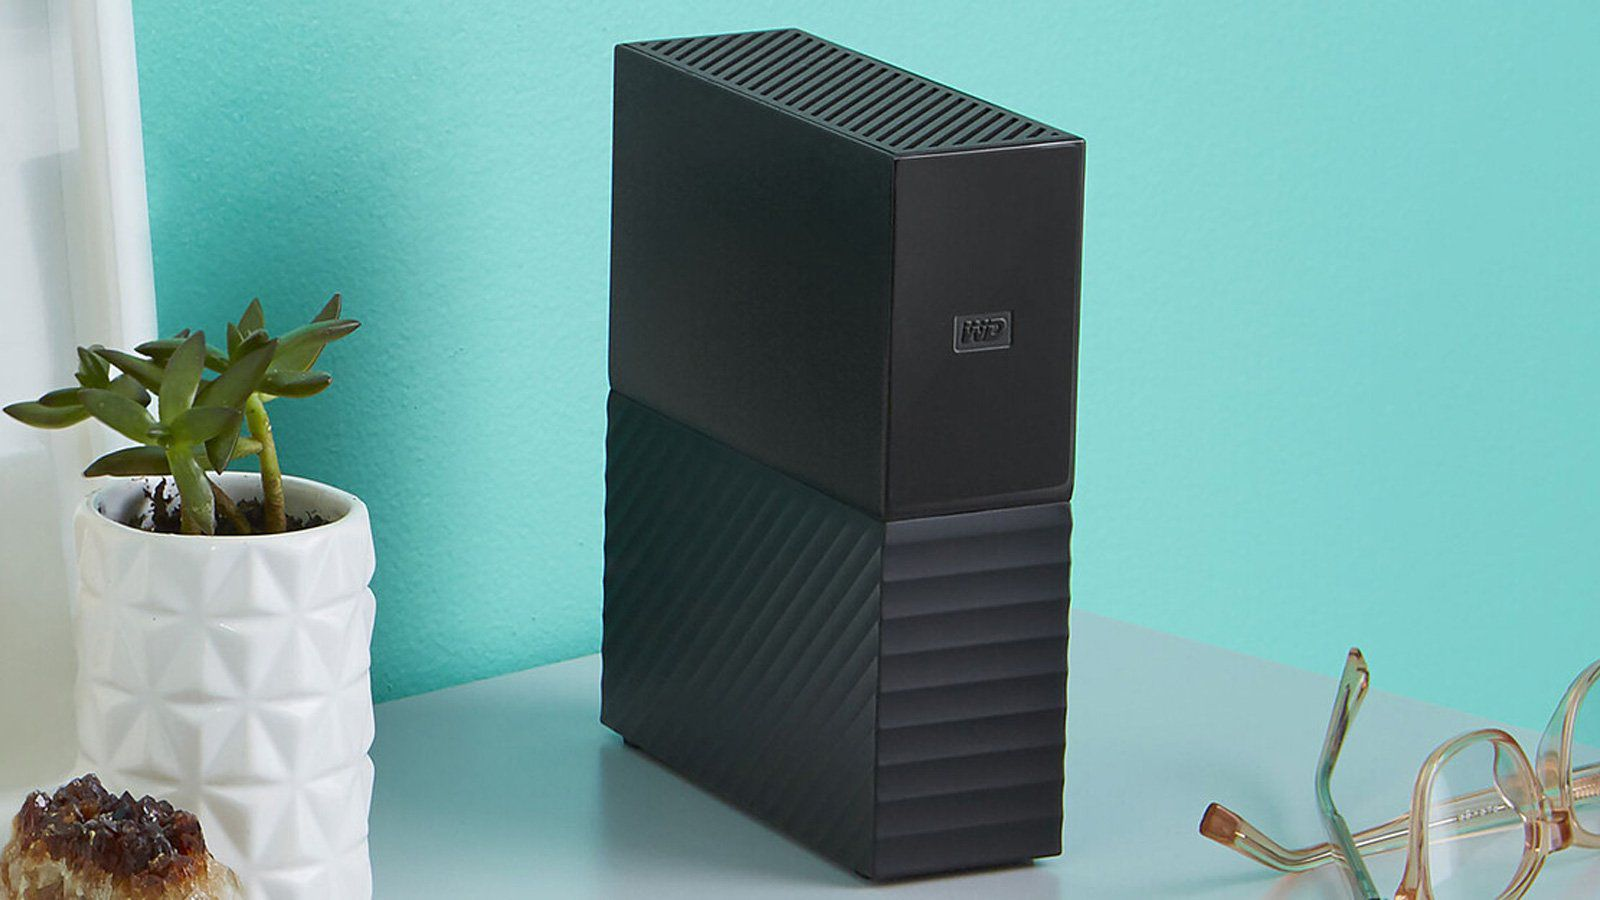 Western Digital Asks 'My Book Live' Device Owners to Unplug After Reports of Remotely Wiped Drives